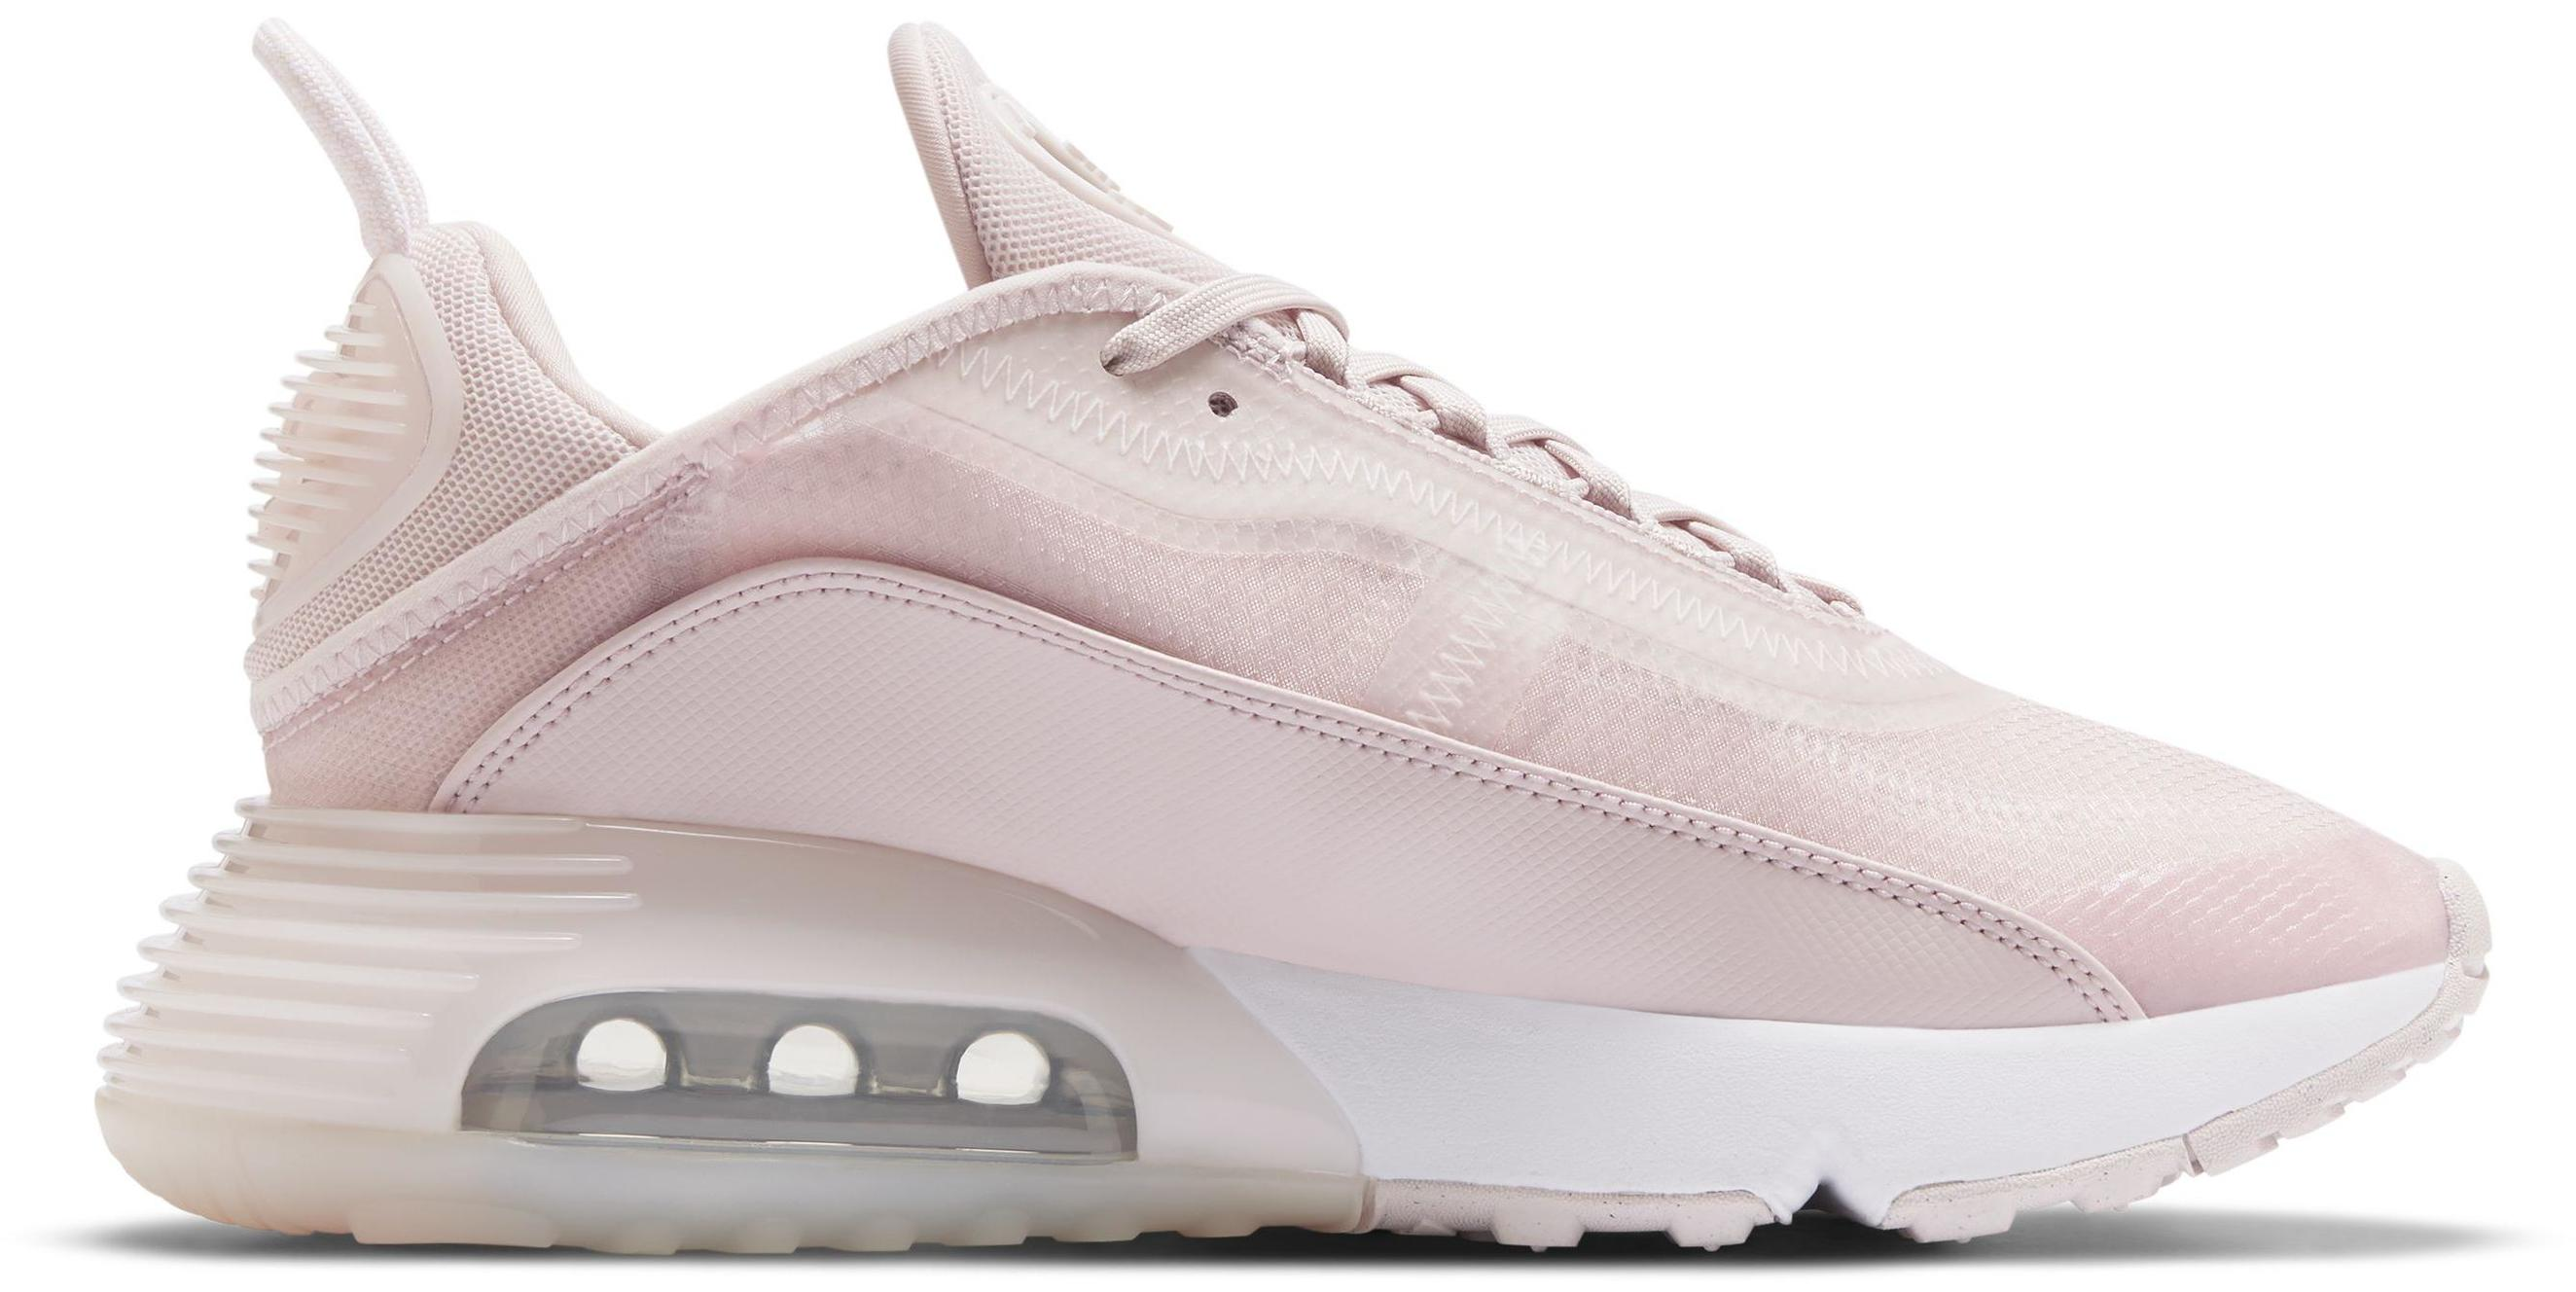 Nike Air Max 2090 Barely Rose/Metallic Silver/White